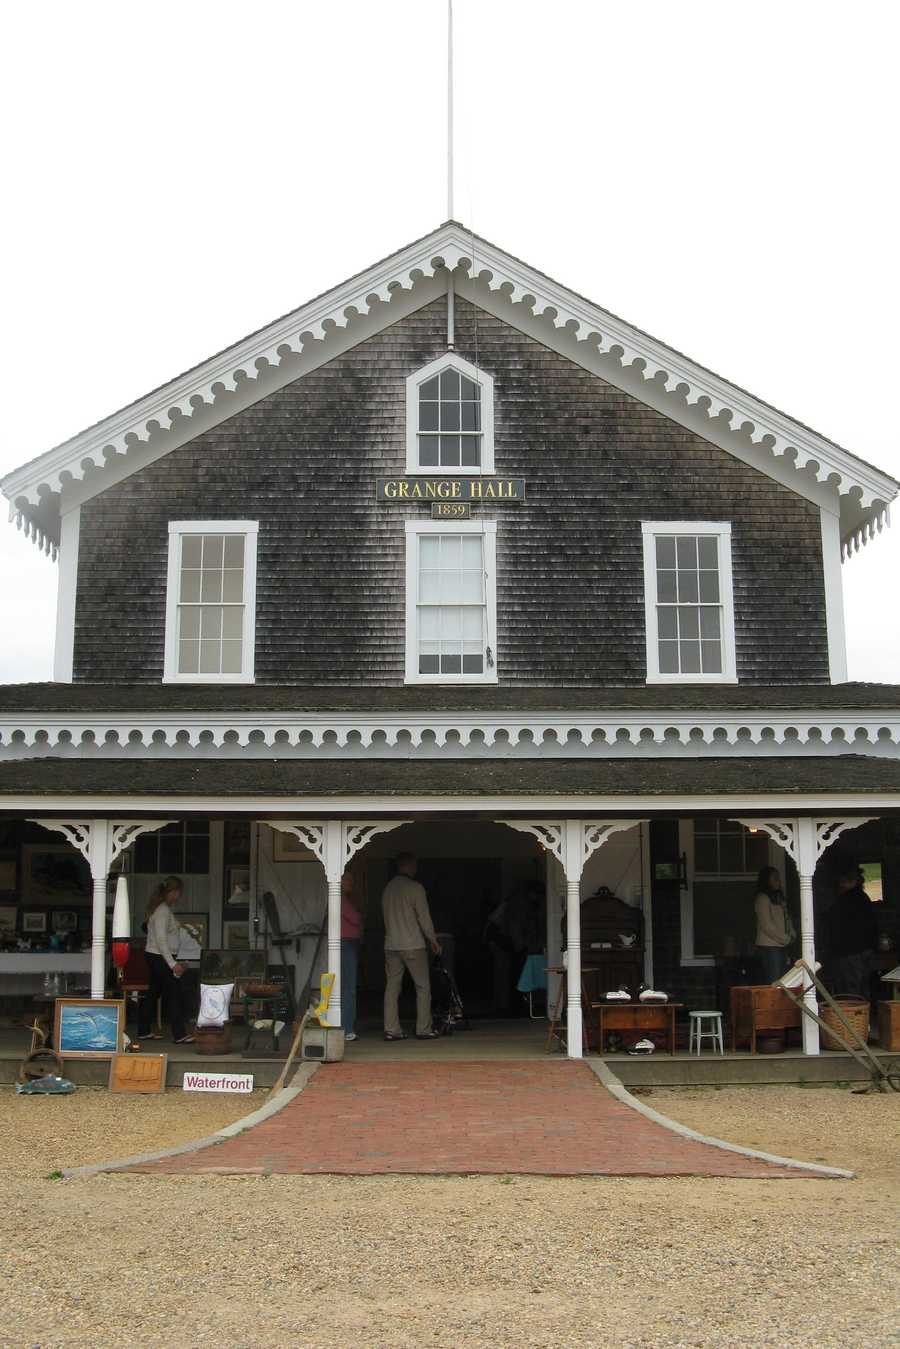 Located on Martha's Vineyard, and the only top 25 town in Dukes County, West Tisbury had 36 home sales in 2013, an increase of 44% compared to 2012 when there were 25 sales. West Tisbury is a popular tourist town, with its scenic beaches and rich farm land.